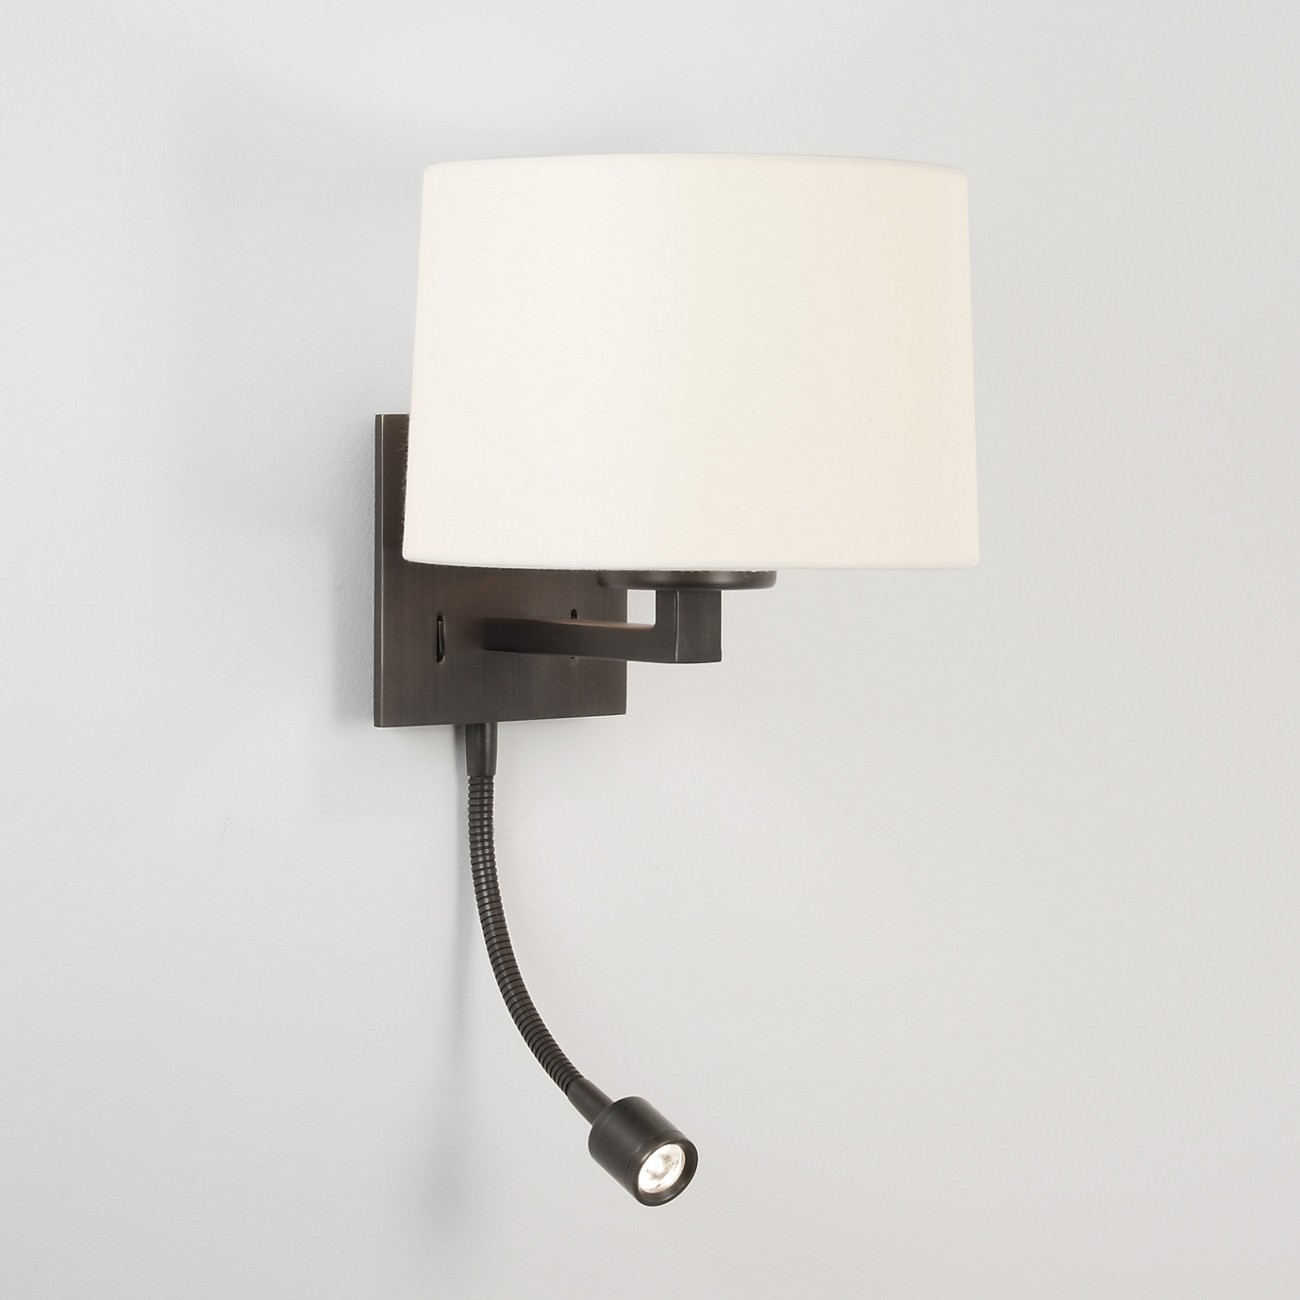 Wandlampe mit Leselicht LED, runder Stoffschirm AZUMI CLASSIC LED WALL TAPERED